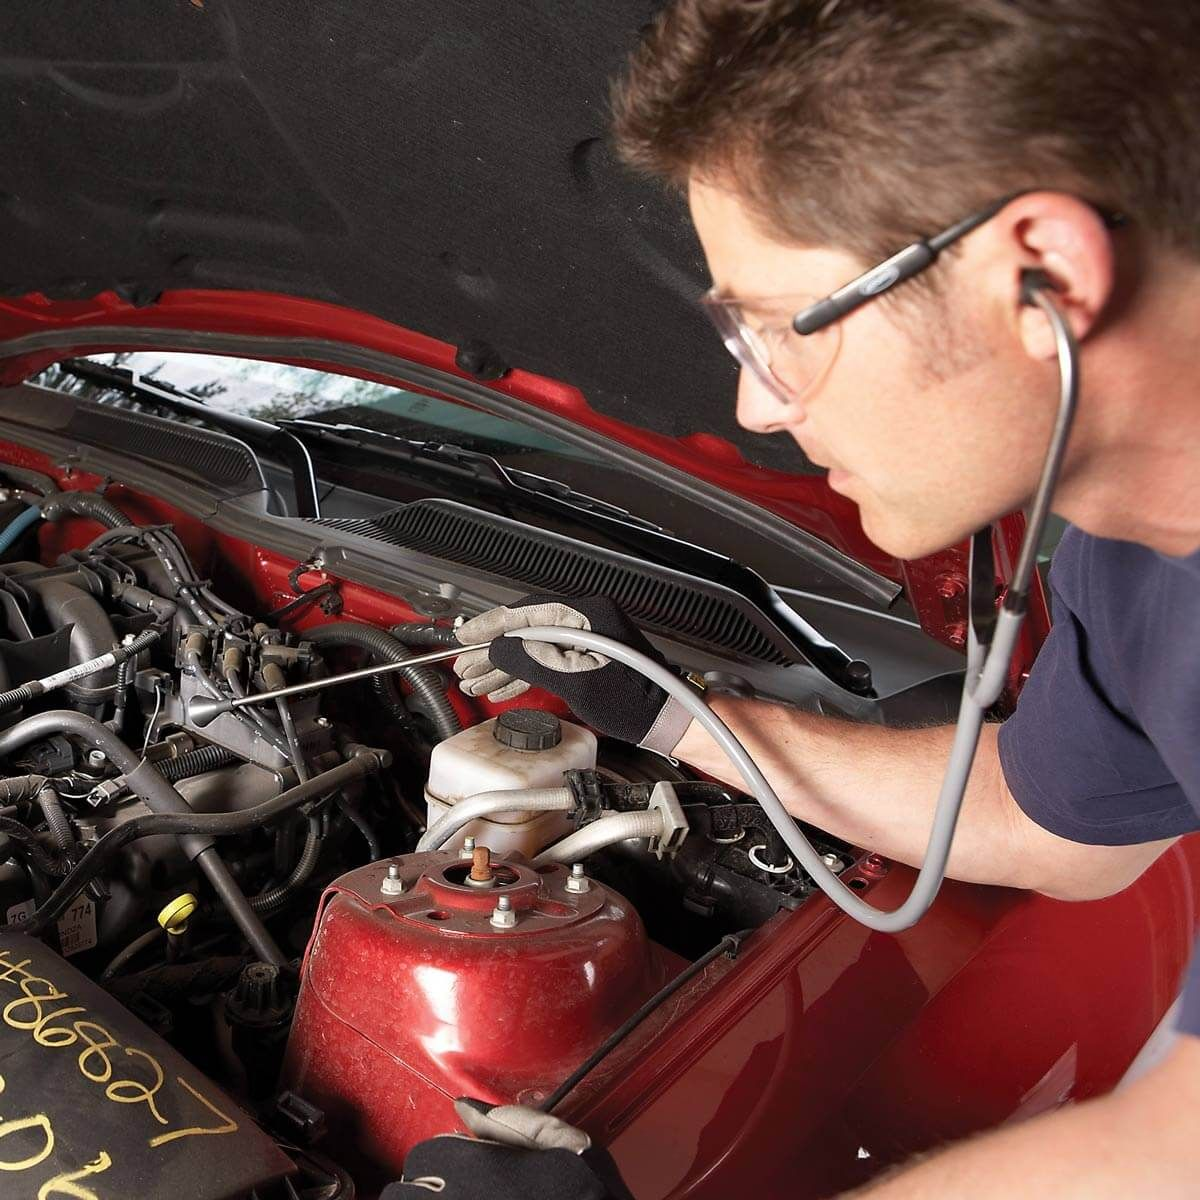 100 Car Maintenance Tasks You Can Do On Your Own Car Maintenance Car Repair Diy Auto Repair